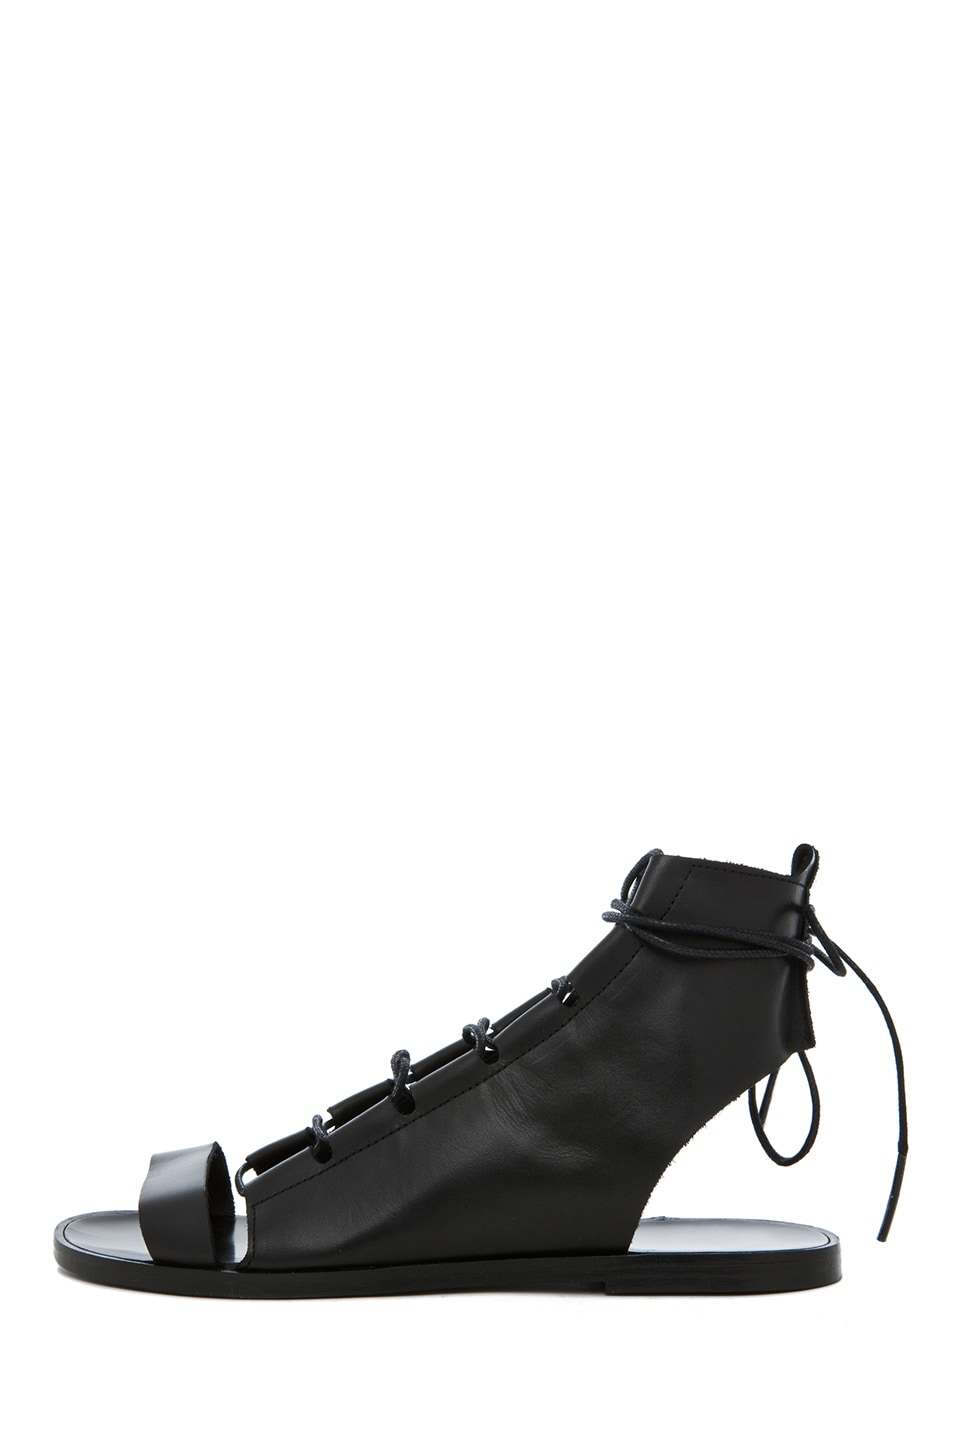 Image 1 of Pierre Hardy Gladiator Leather Sandals in Black